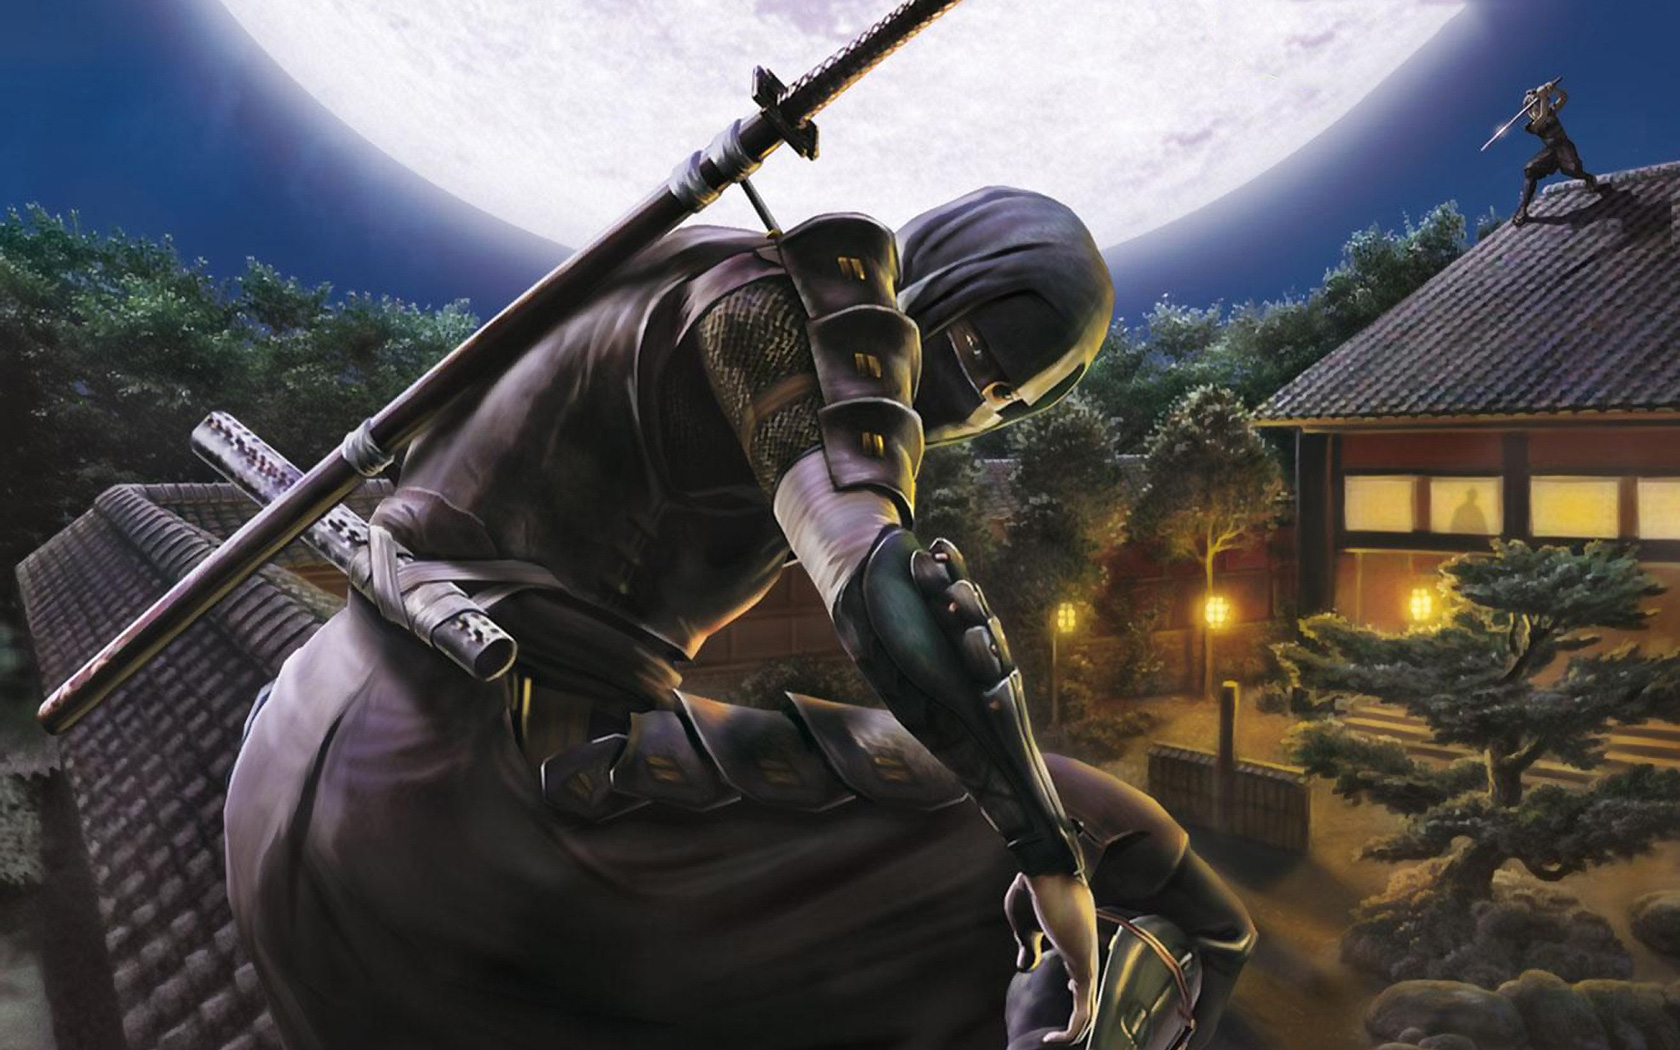 Tenchu Z Wallpaper in 1680x1050